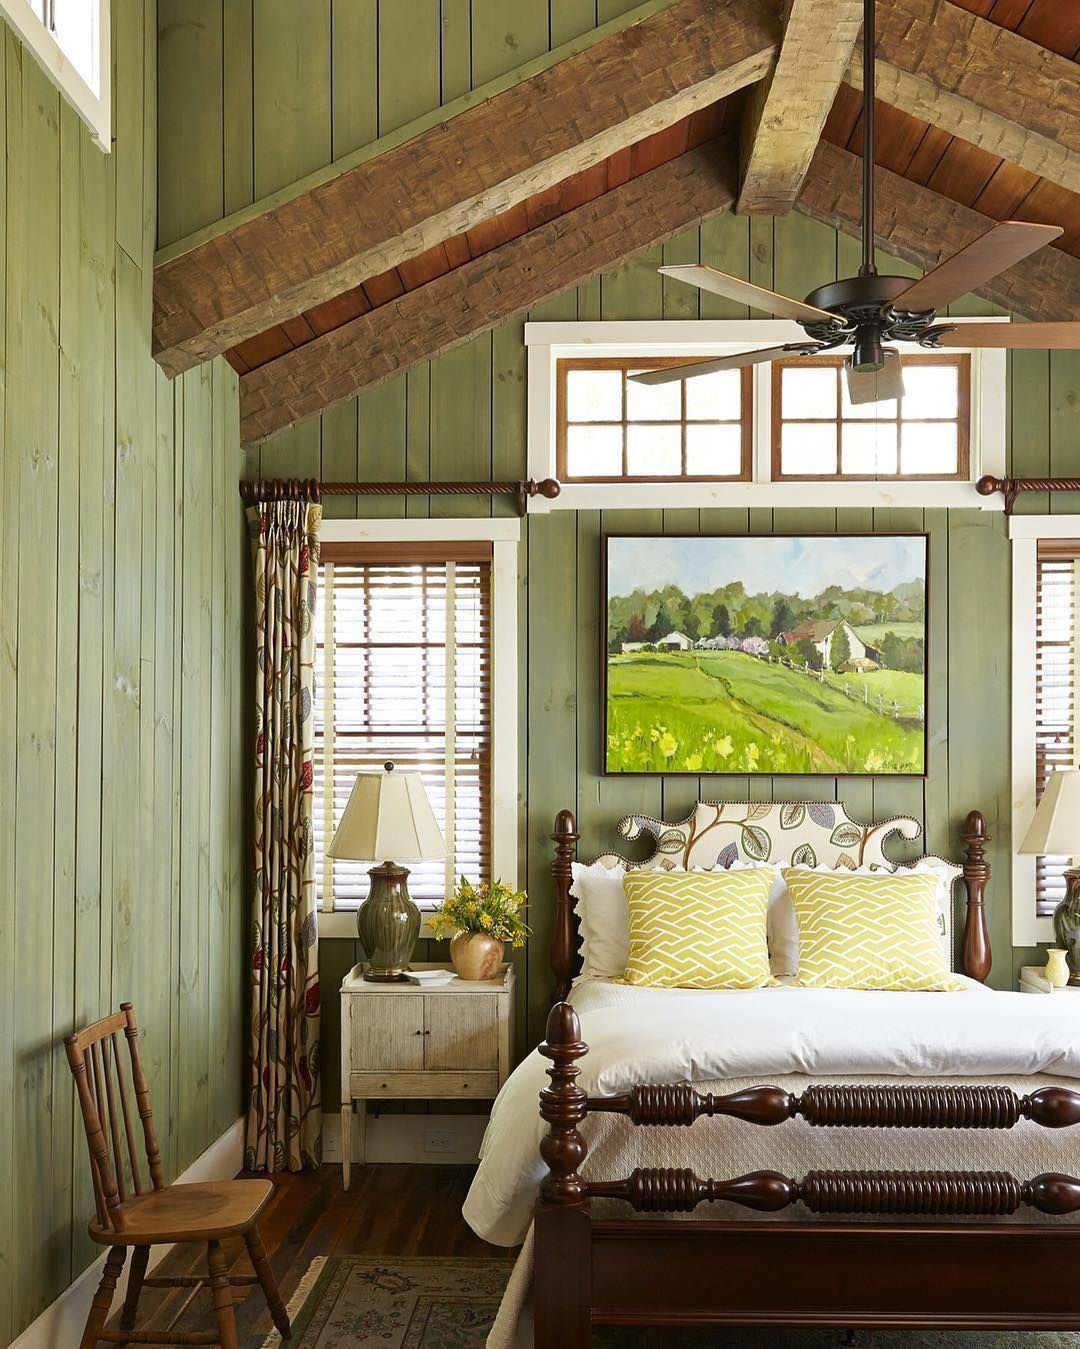 Master bedroom green  Pin by Mia on Deco  Pinterest  Bedrooms Green paint colors and